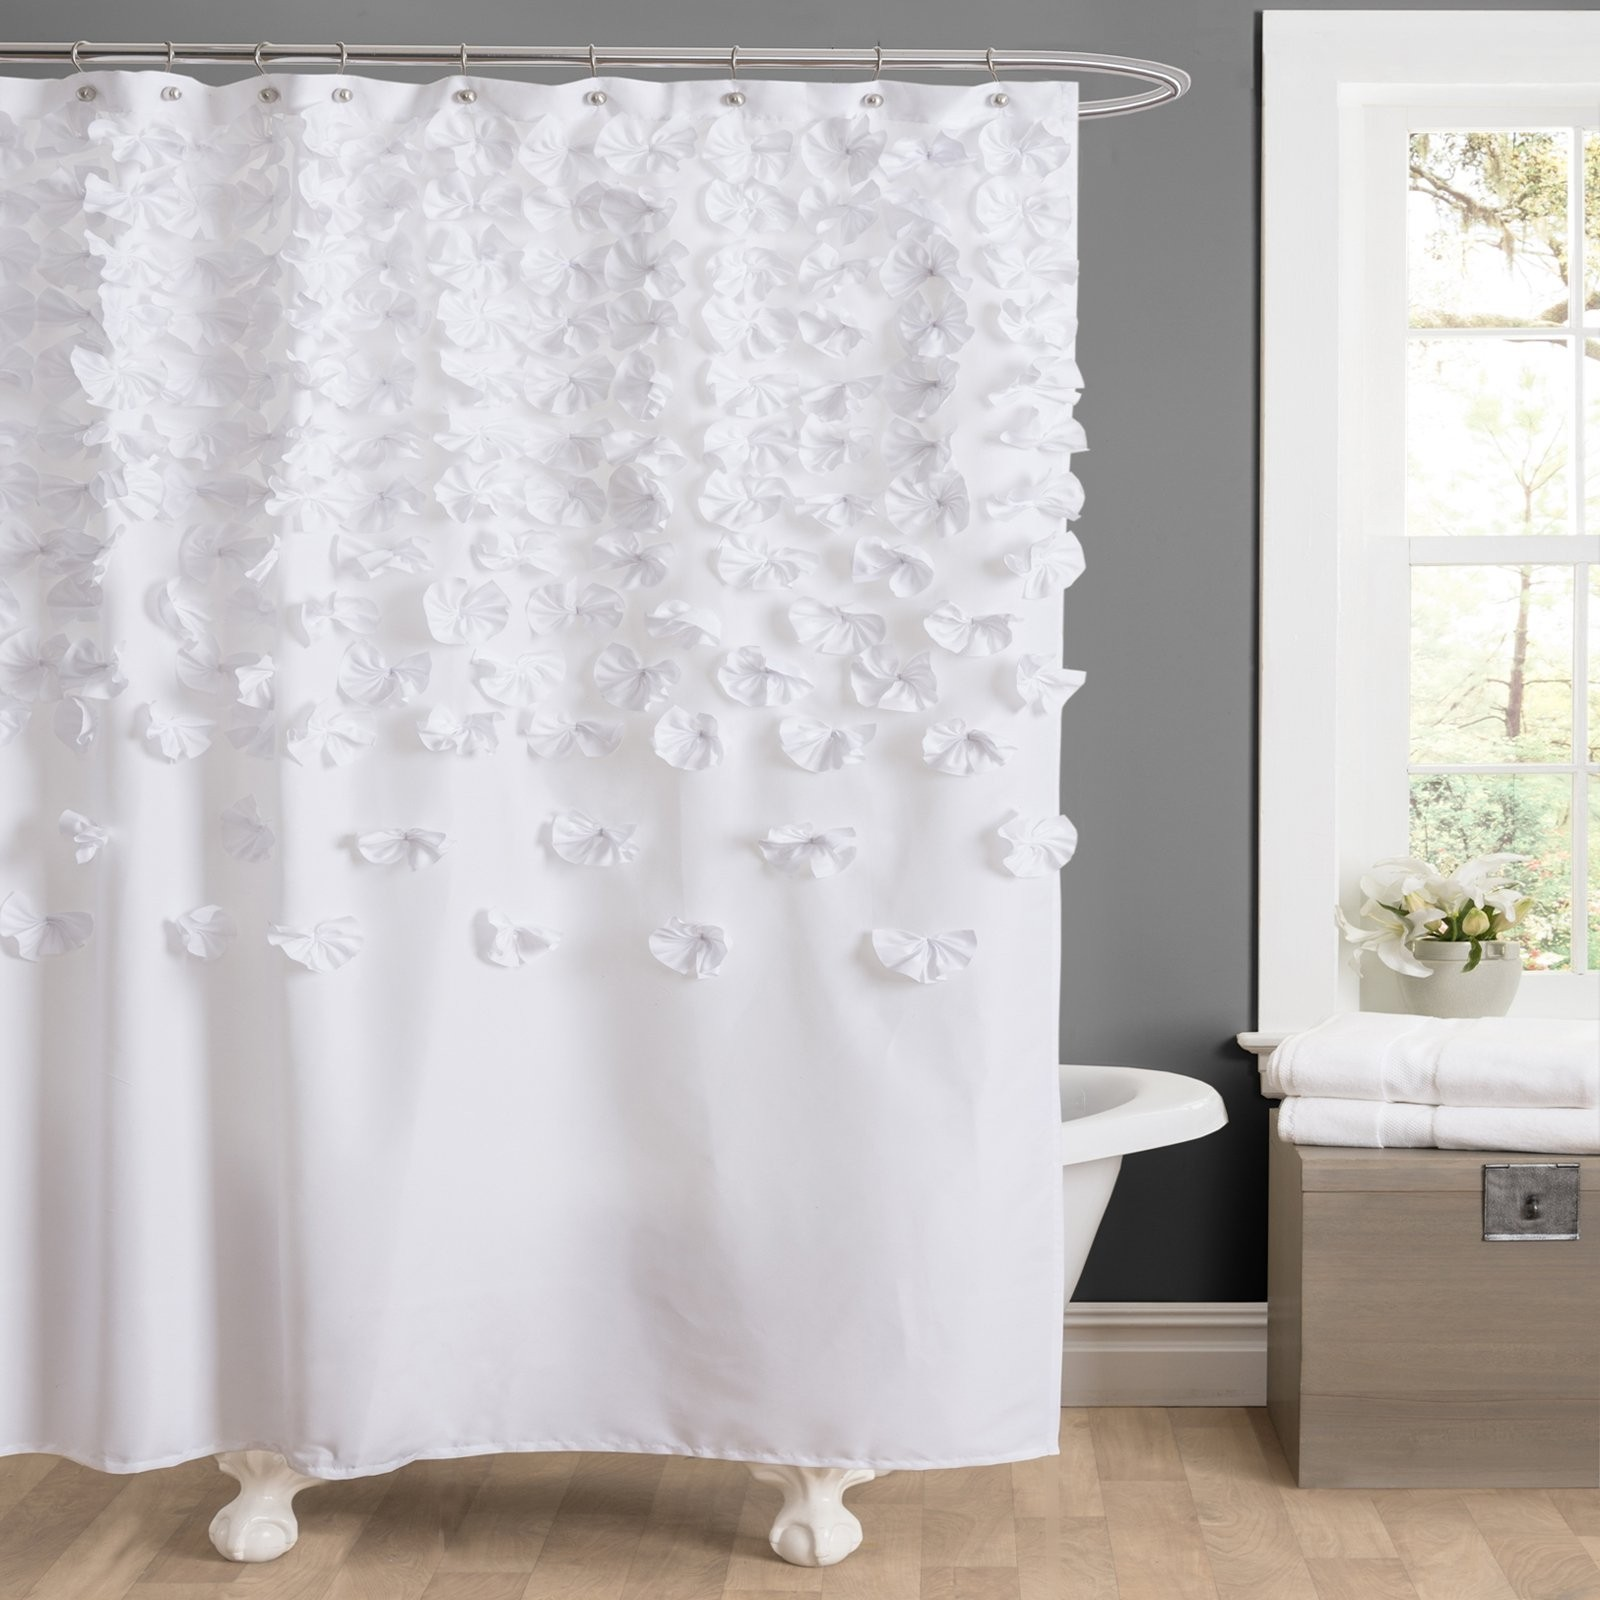 Lucia Polyester Shower Curtain